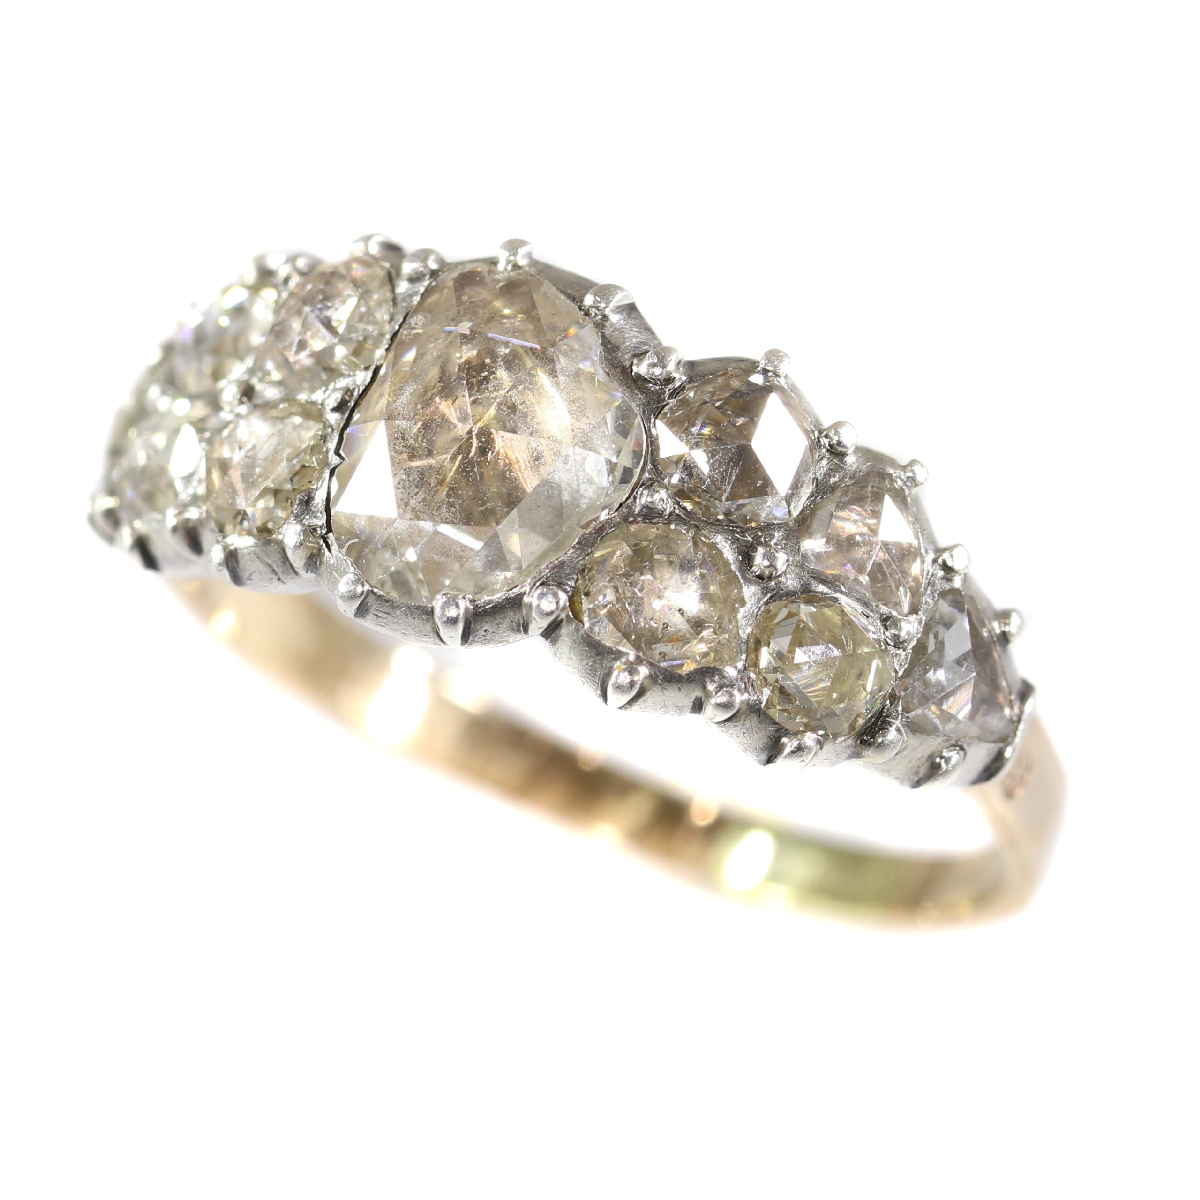 Very early Victorian diamond ring